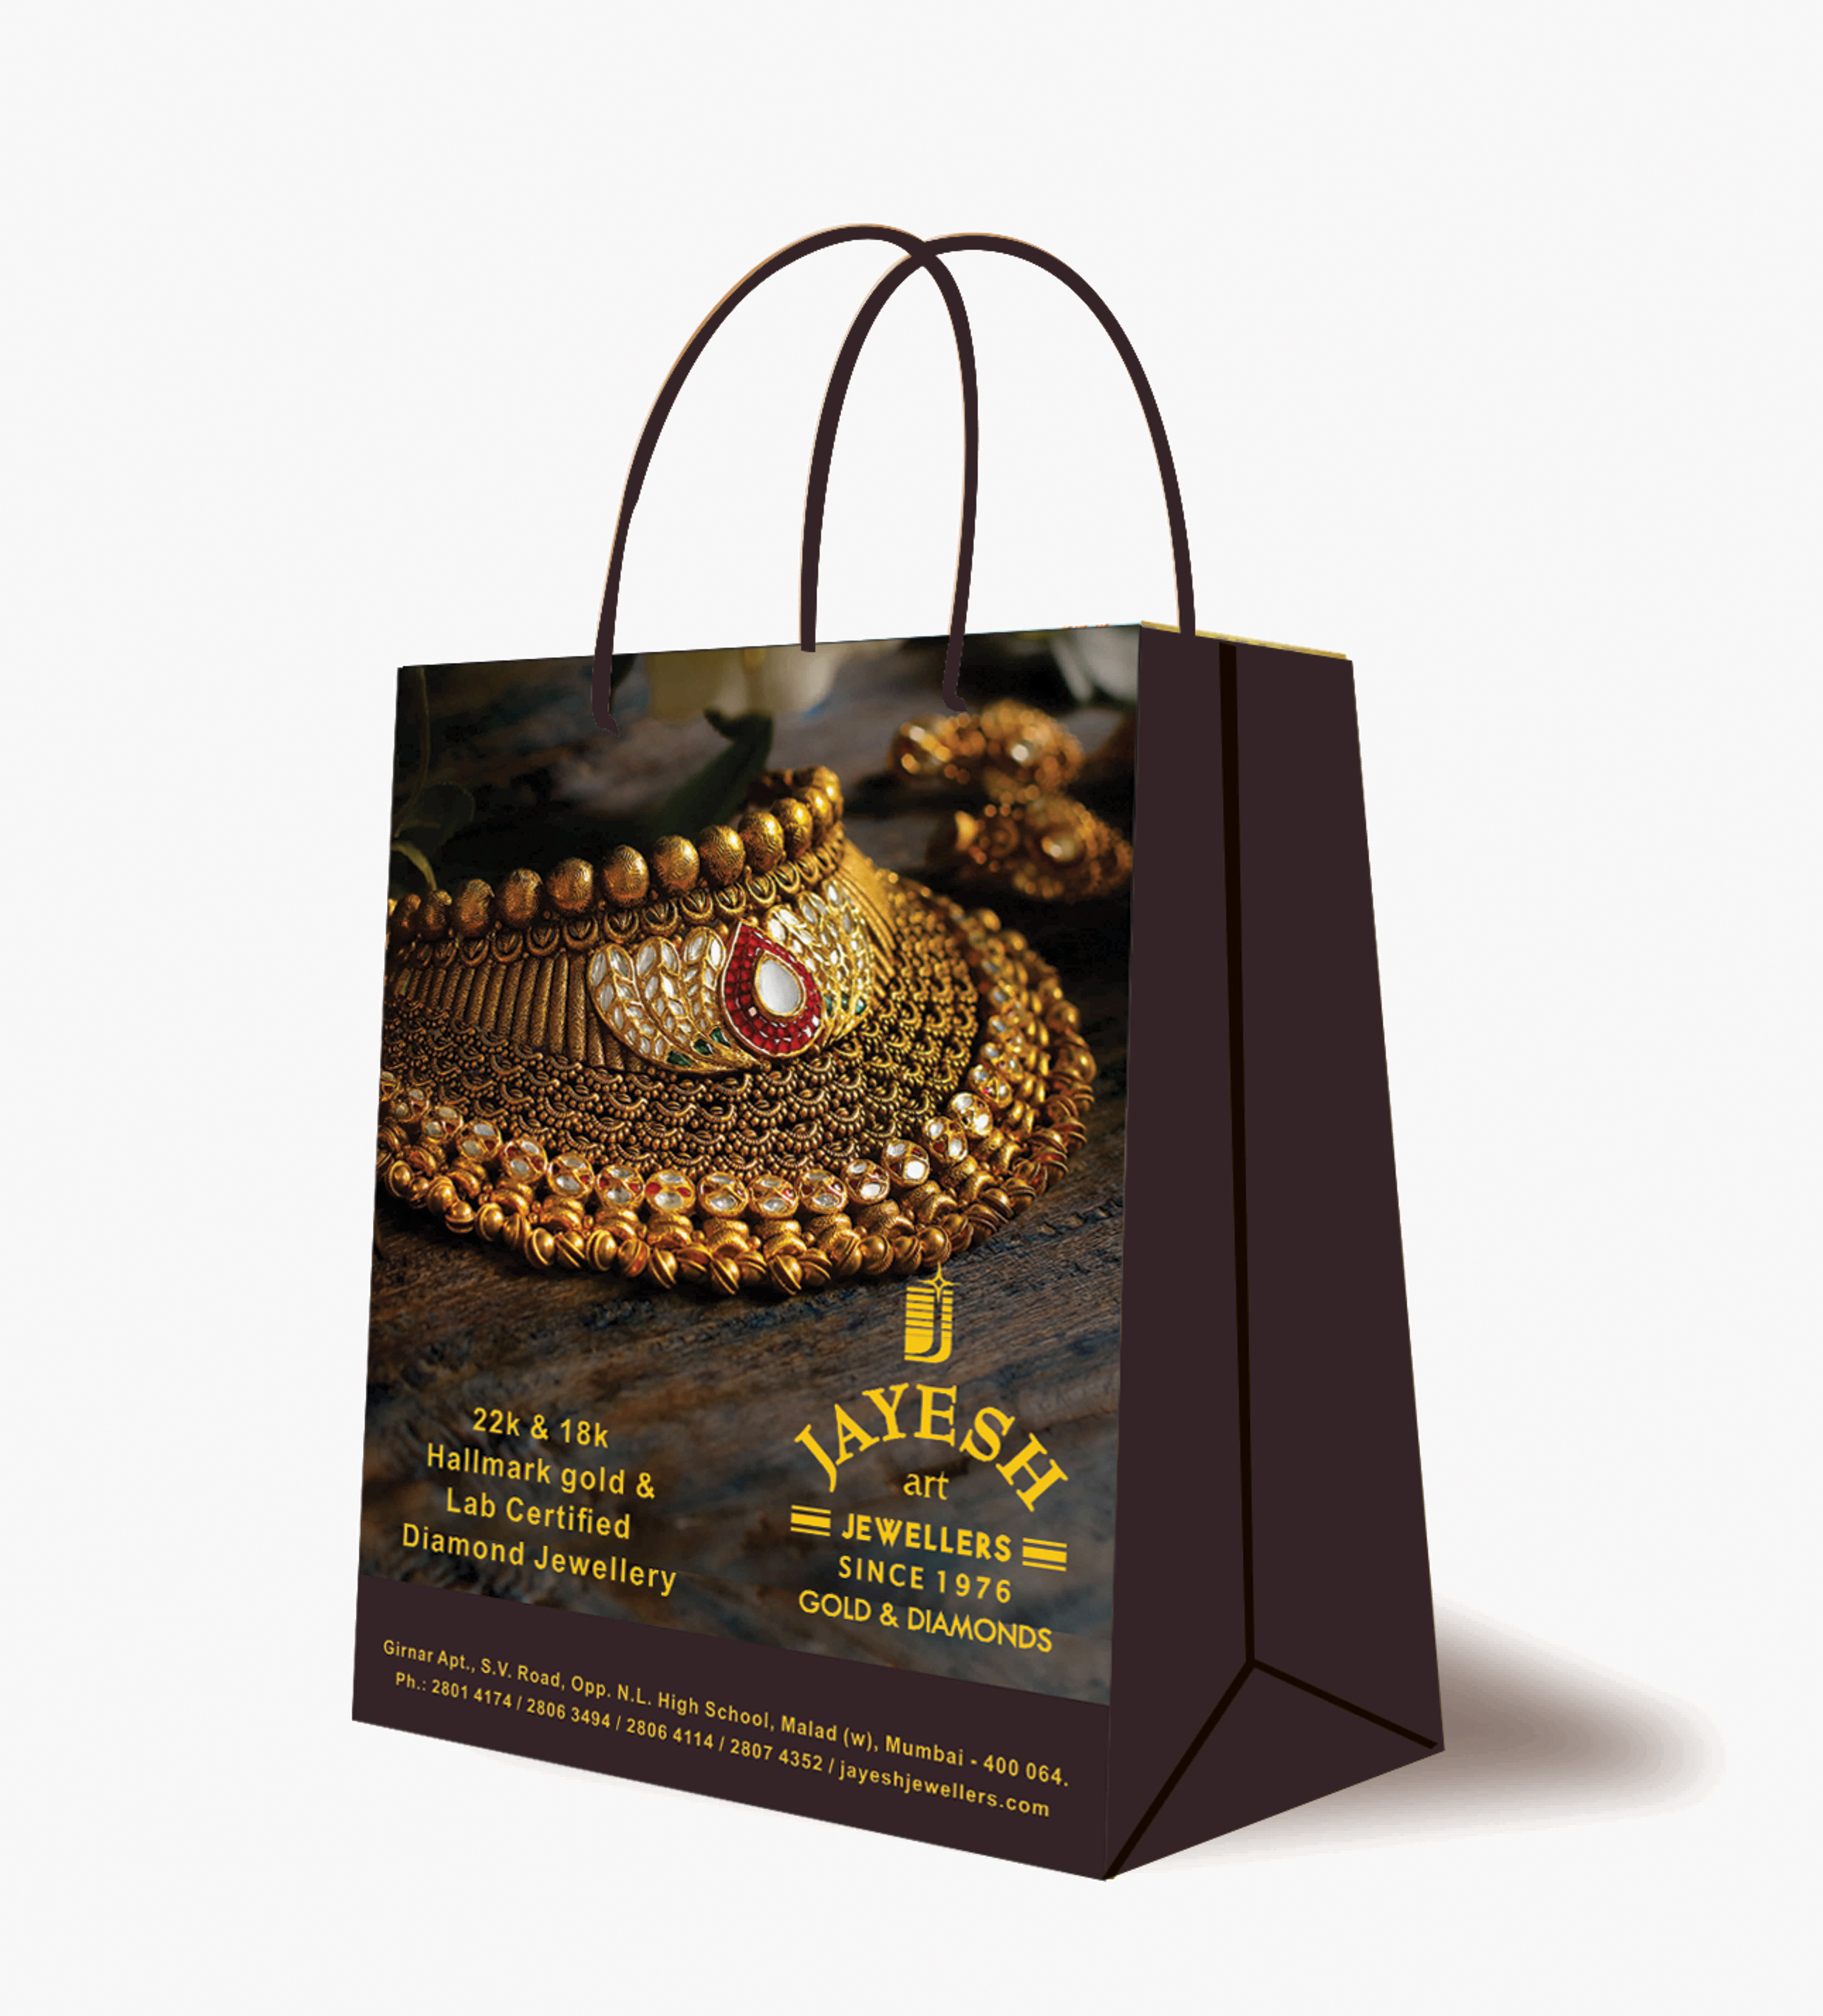 IIJS Bags For Jewellery Showroom